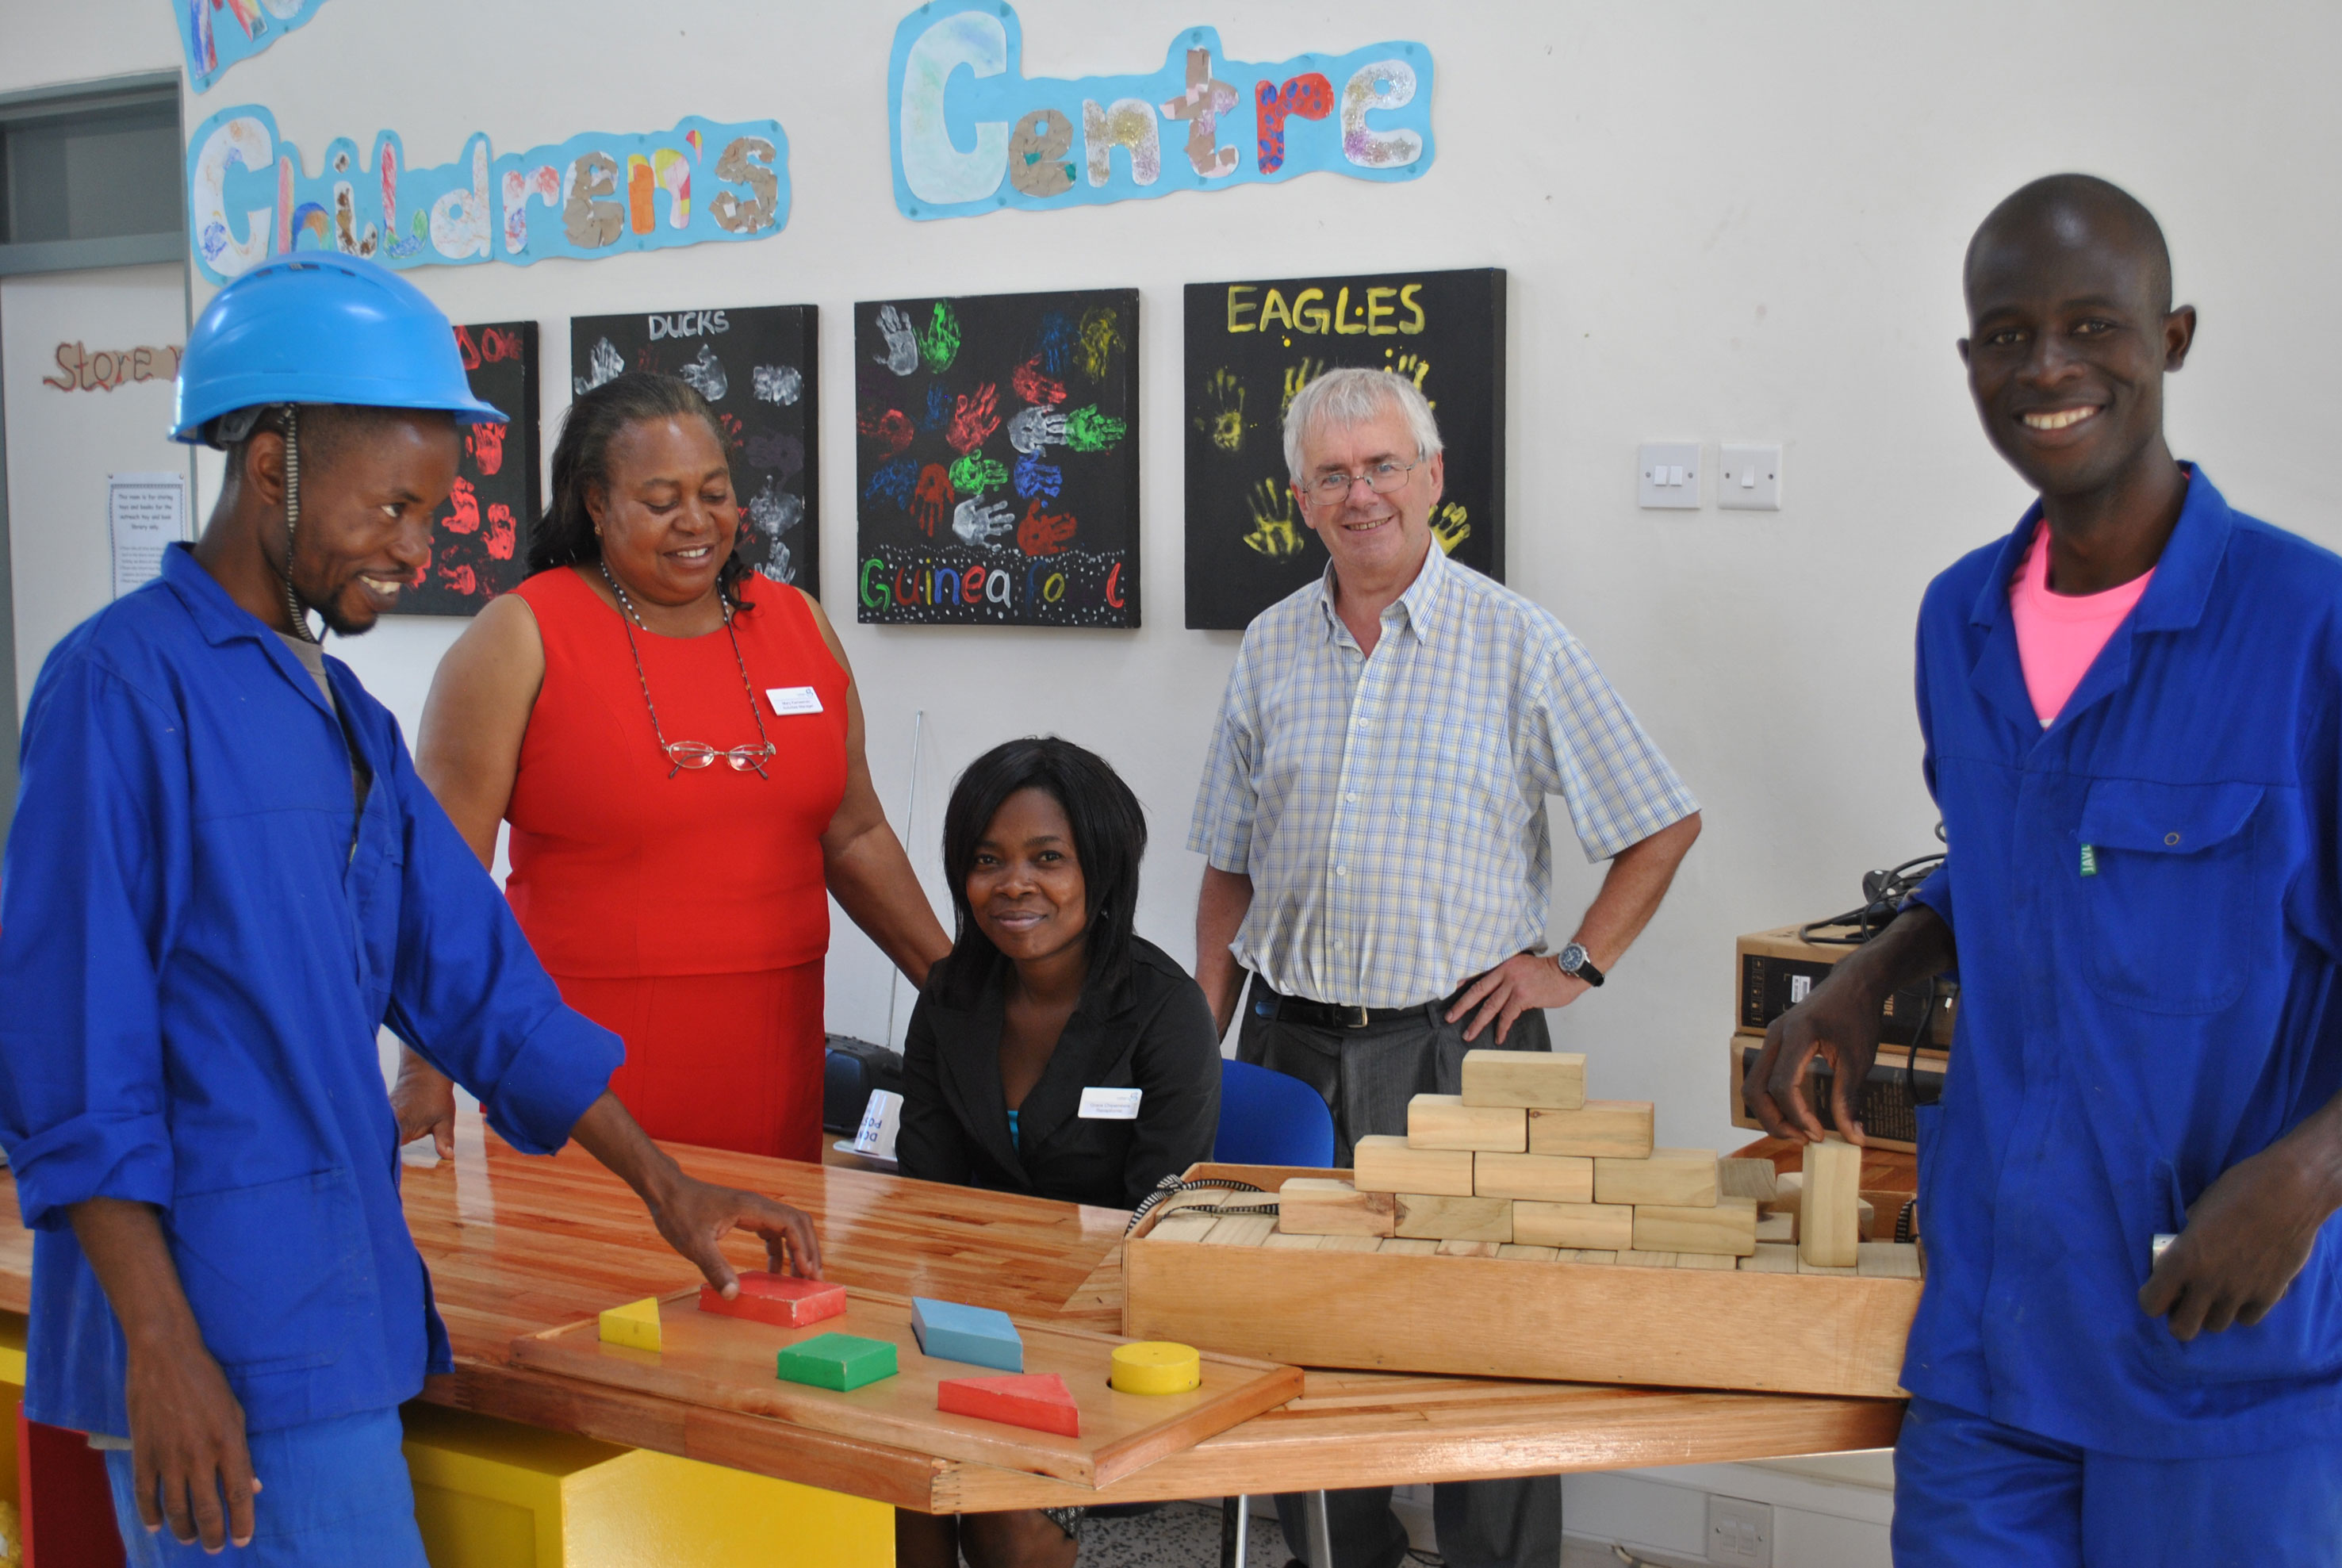 The carpenters present their hand made toys to the children's centre